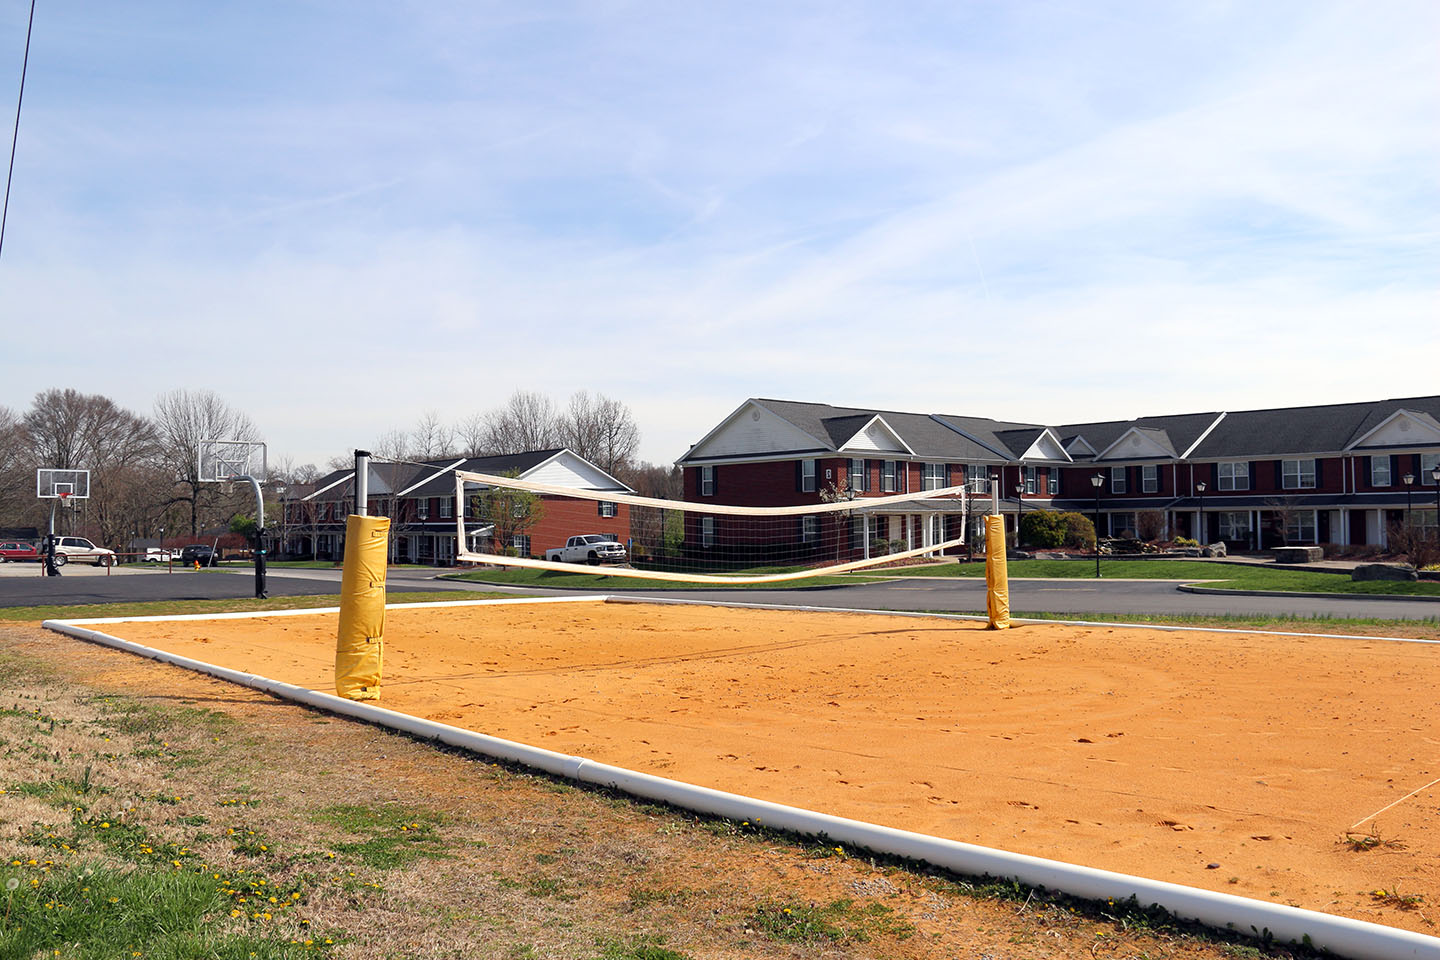 Sand Volleyball and Basketball Court